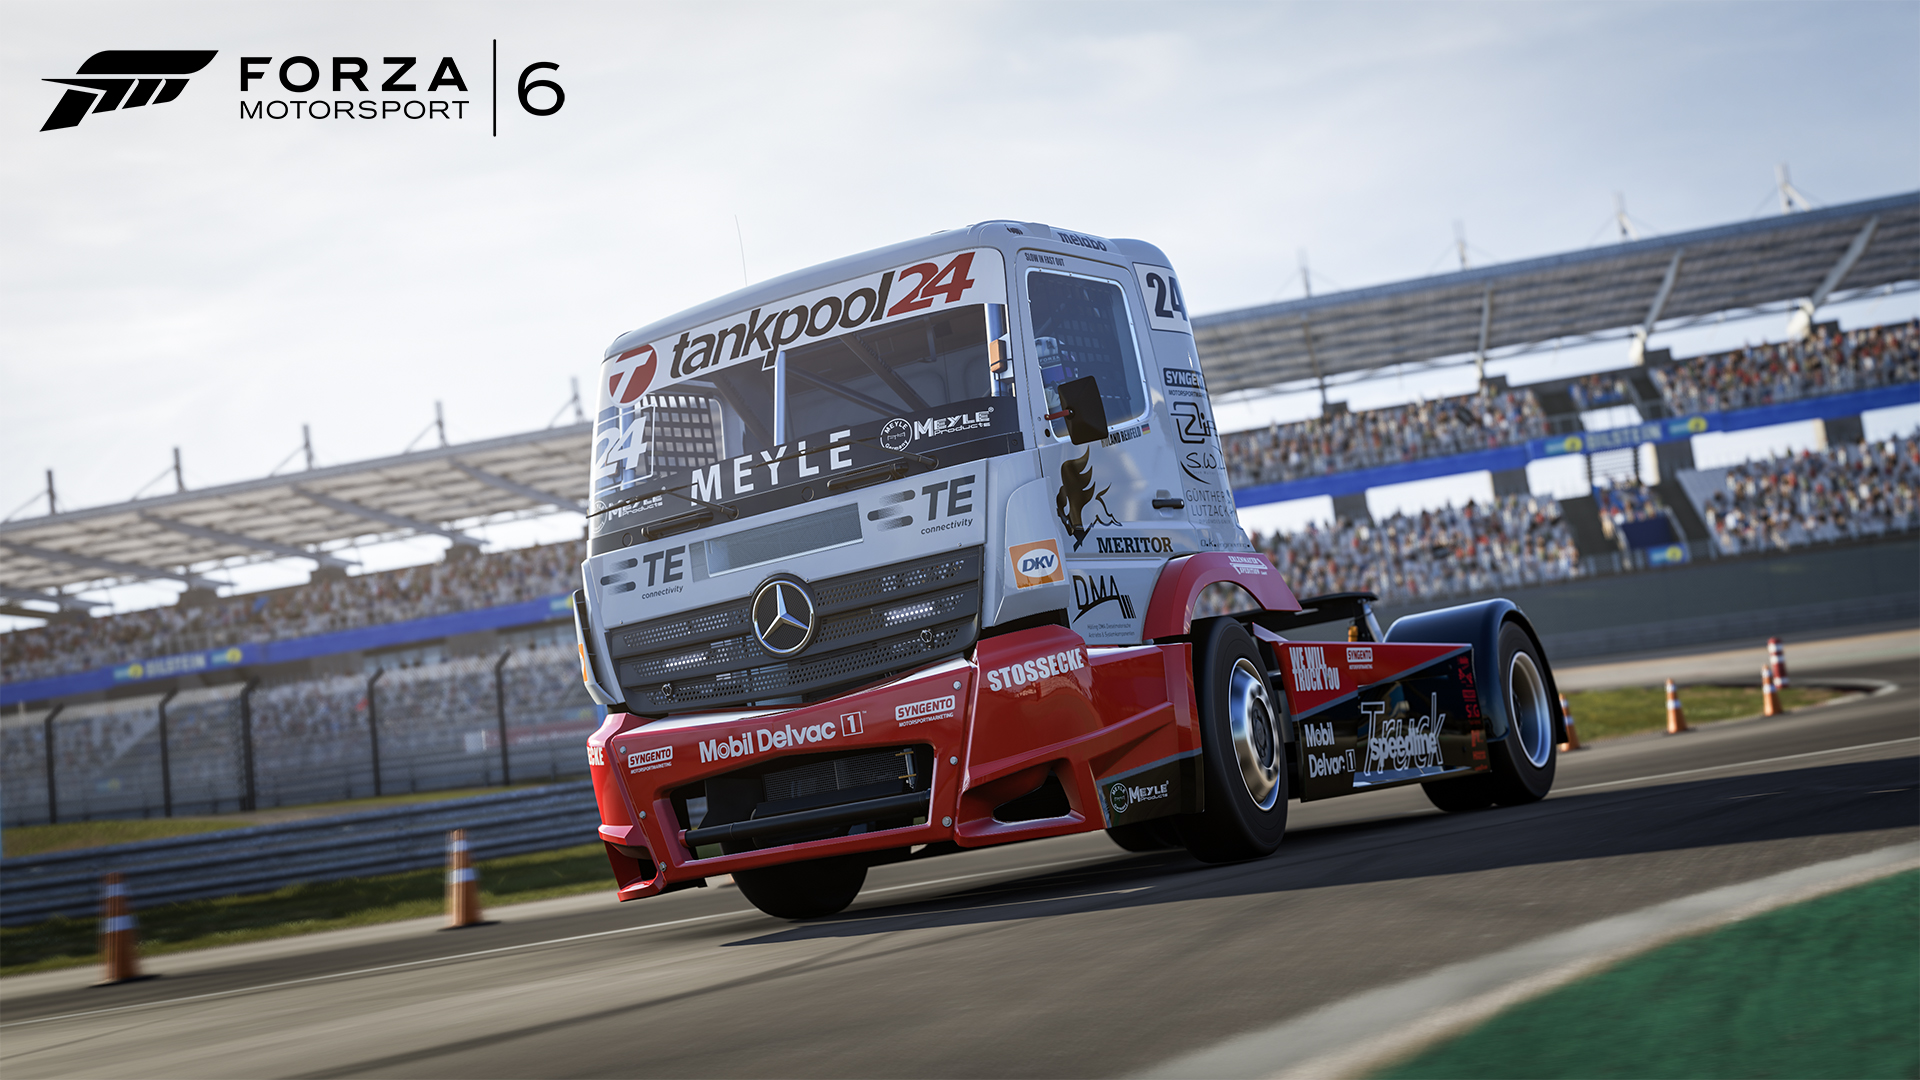 Forza Motorsport 6 DLC released new DLC for Xbox One